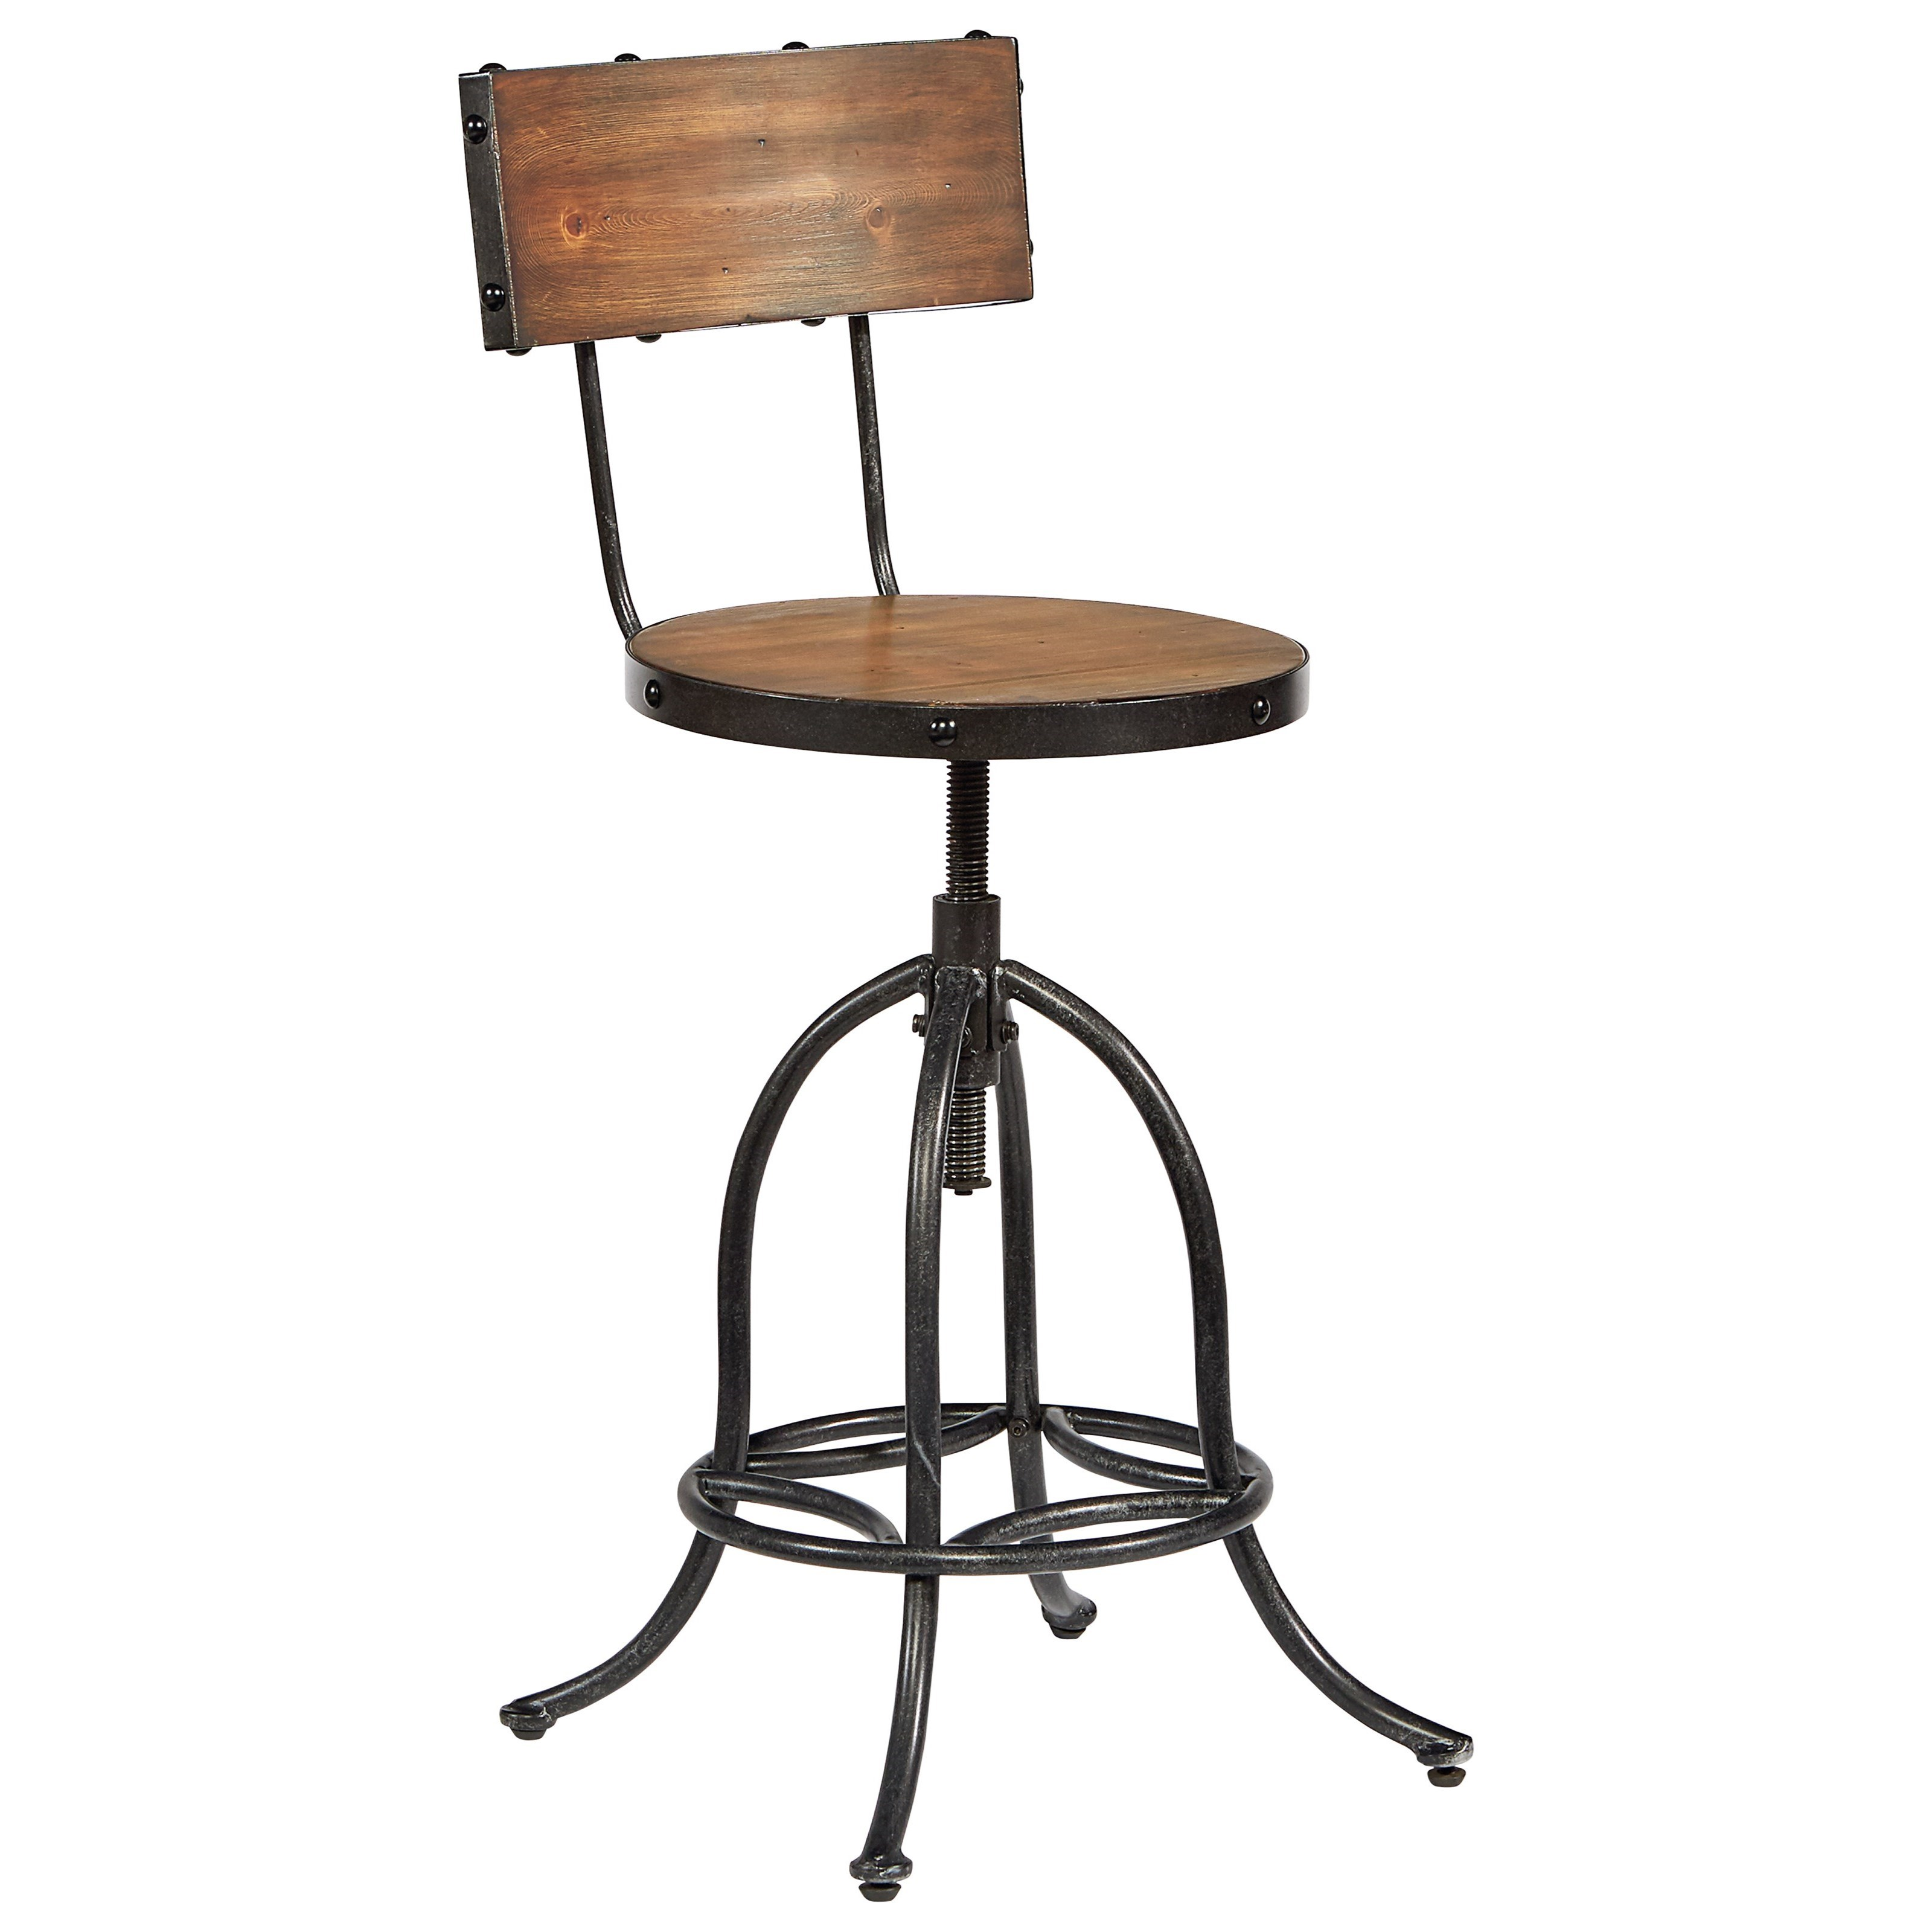 Joanna Gaines Farmhouse Bar Stools Magnolia Home By Joanna Gaines Accent Elements Architect